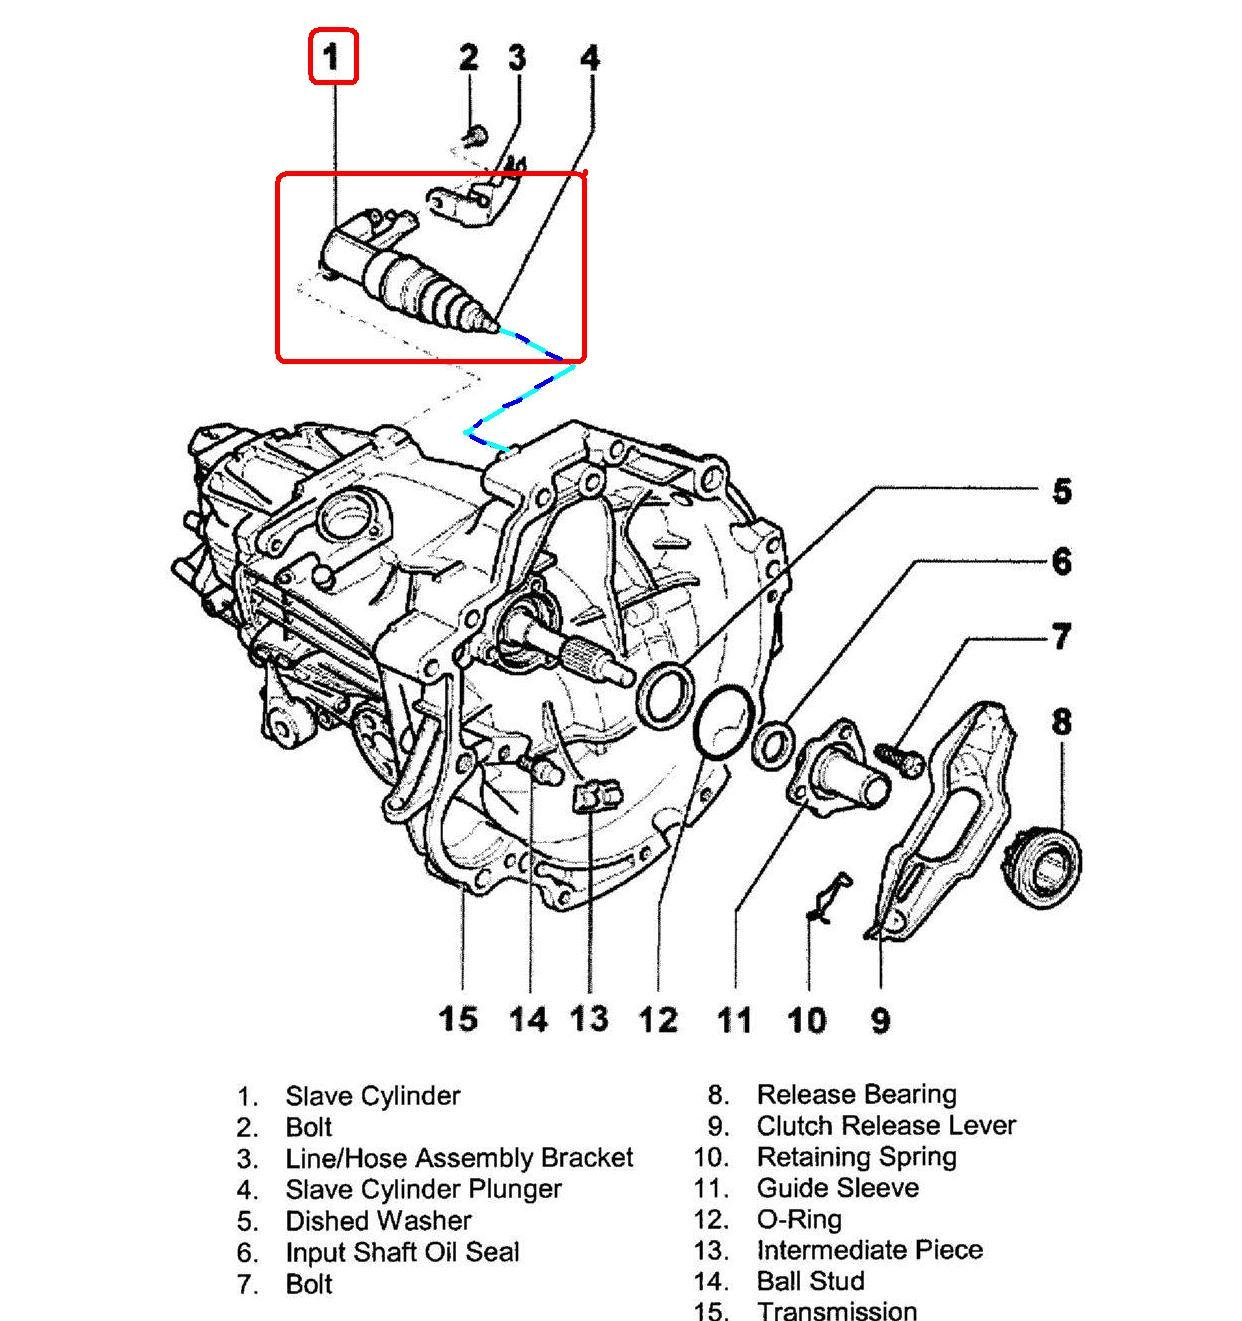 Vw Sharan 2018 Engine Diagram And Wiring Touareg Fuse Box 2014 Together With 1998 Range Rover Further 5p1qp